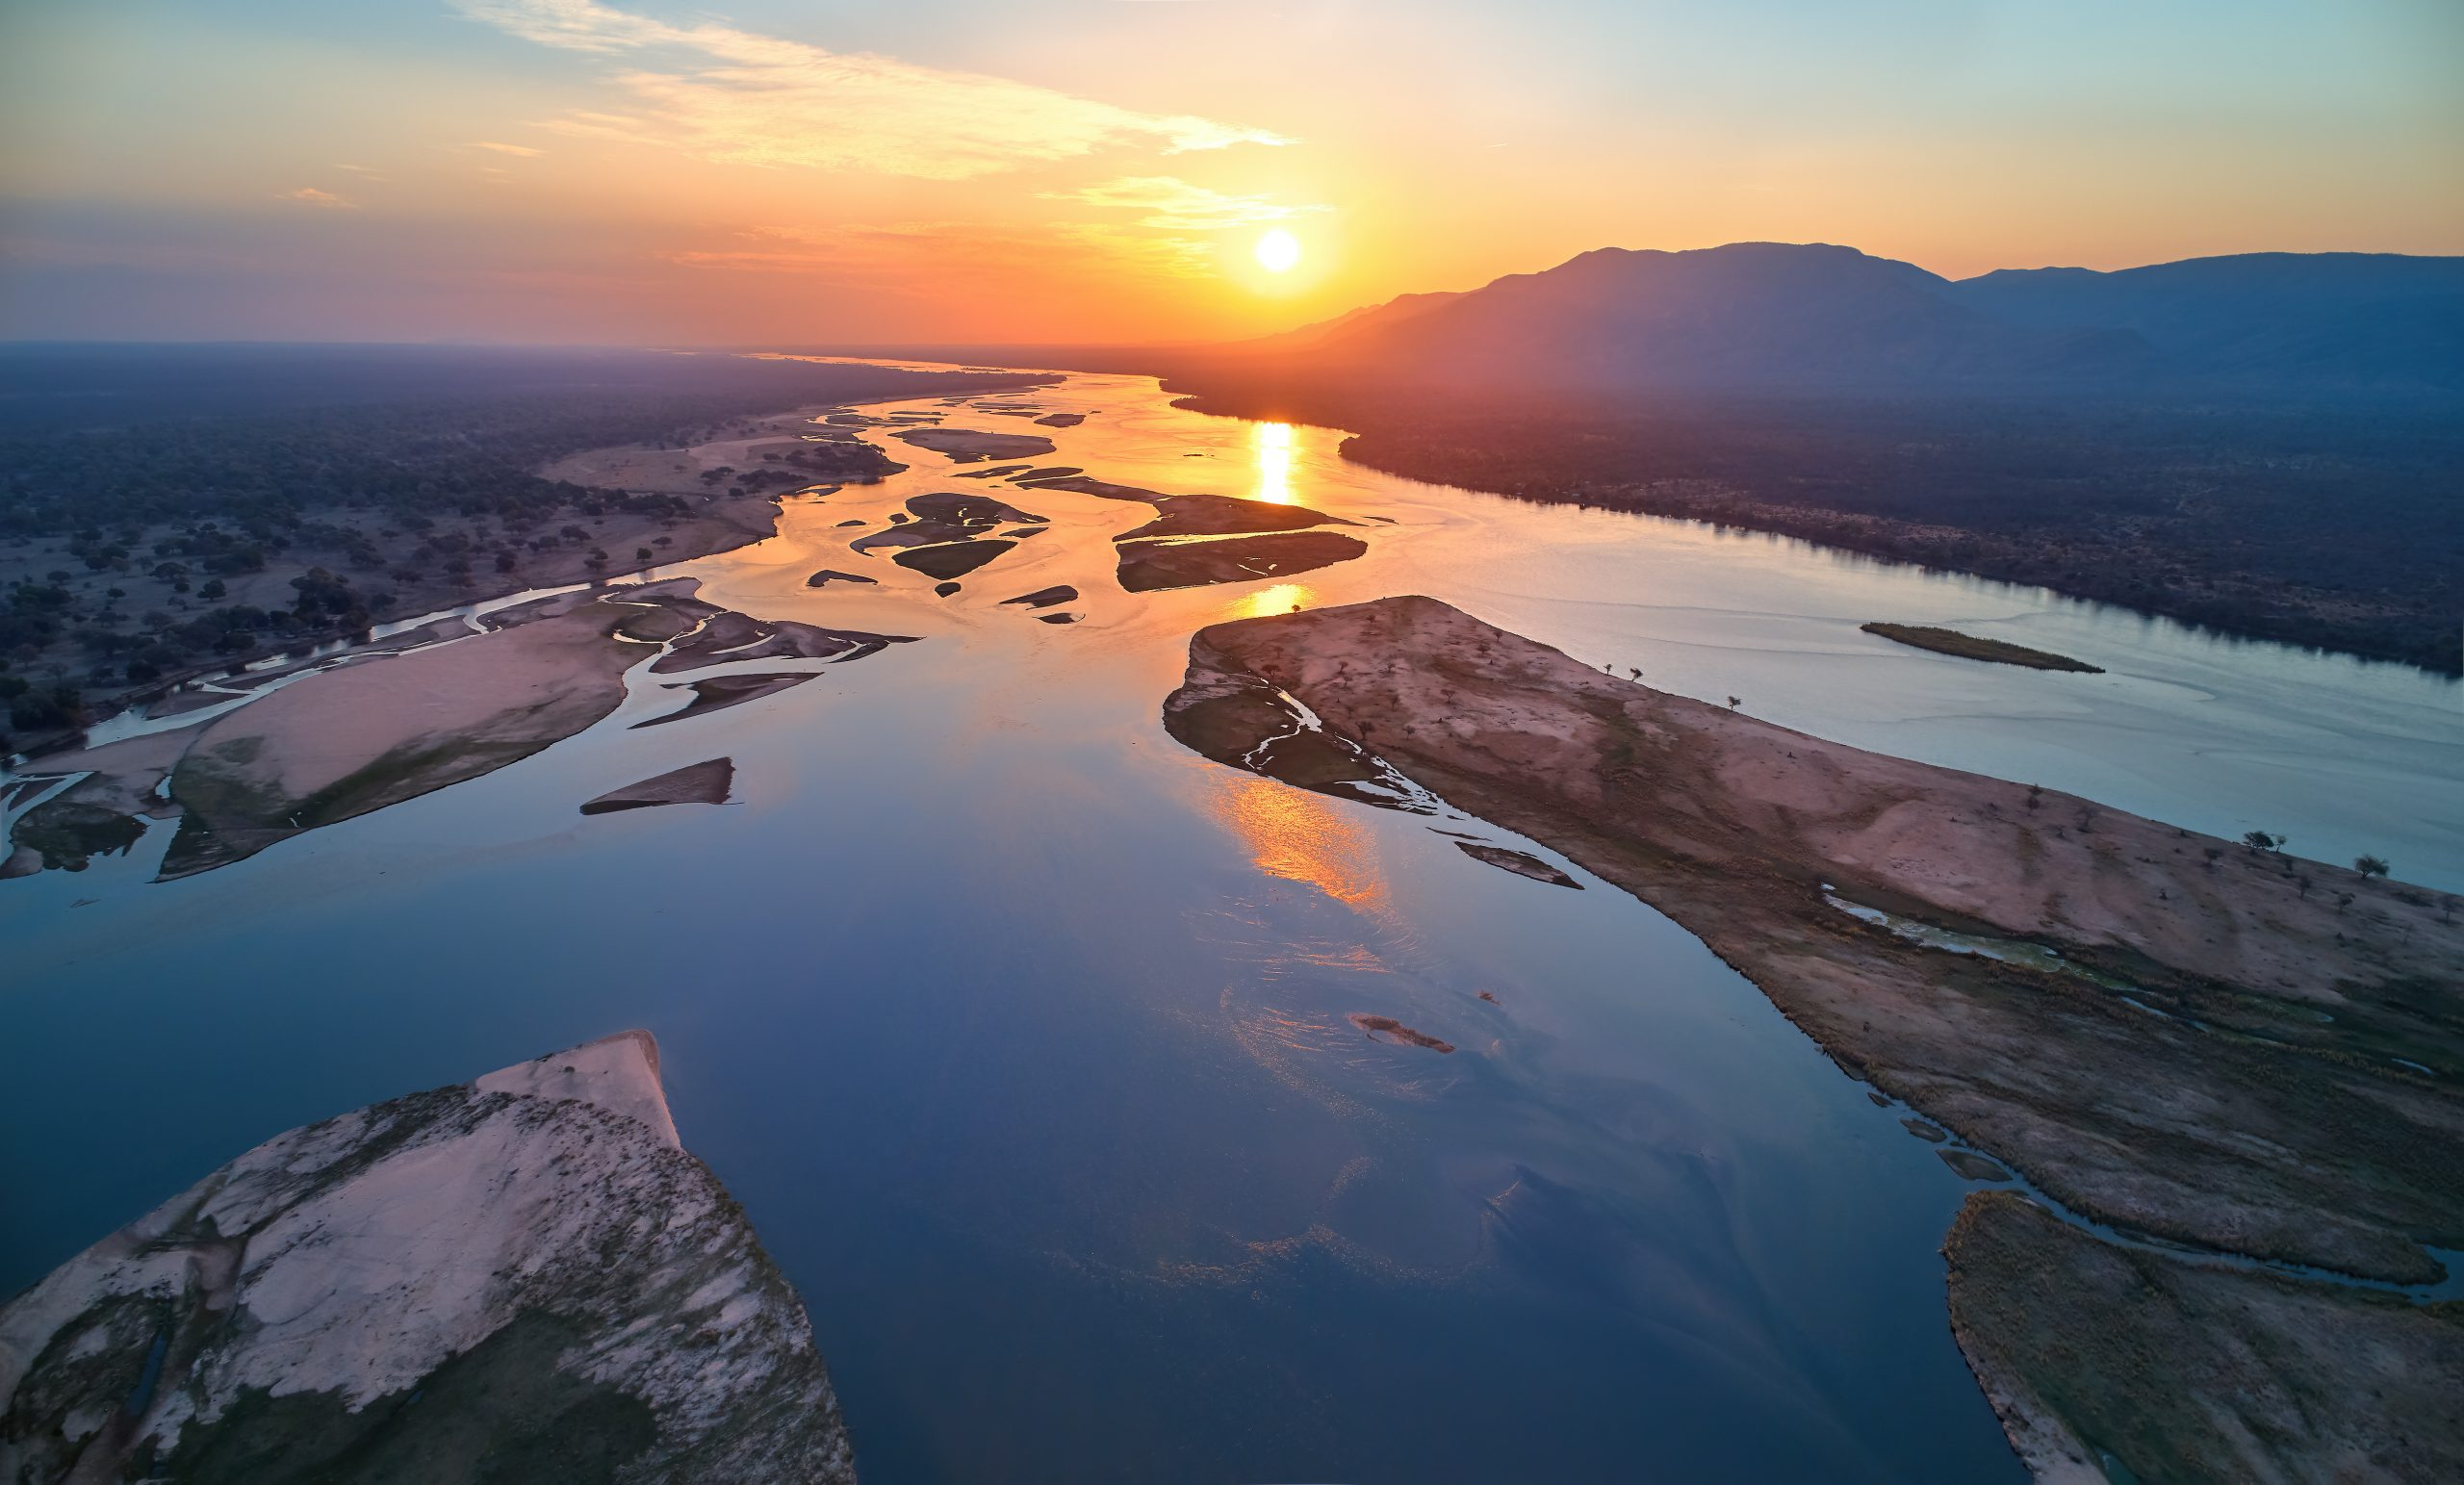 Aerial, west view of Zambezi river, mountains and african wilderness. Colorful sunset reflecting on huge  Zambezi river, view from above. UNESCO heritage site, Mana Pools national park, Zimbabwe.